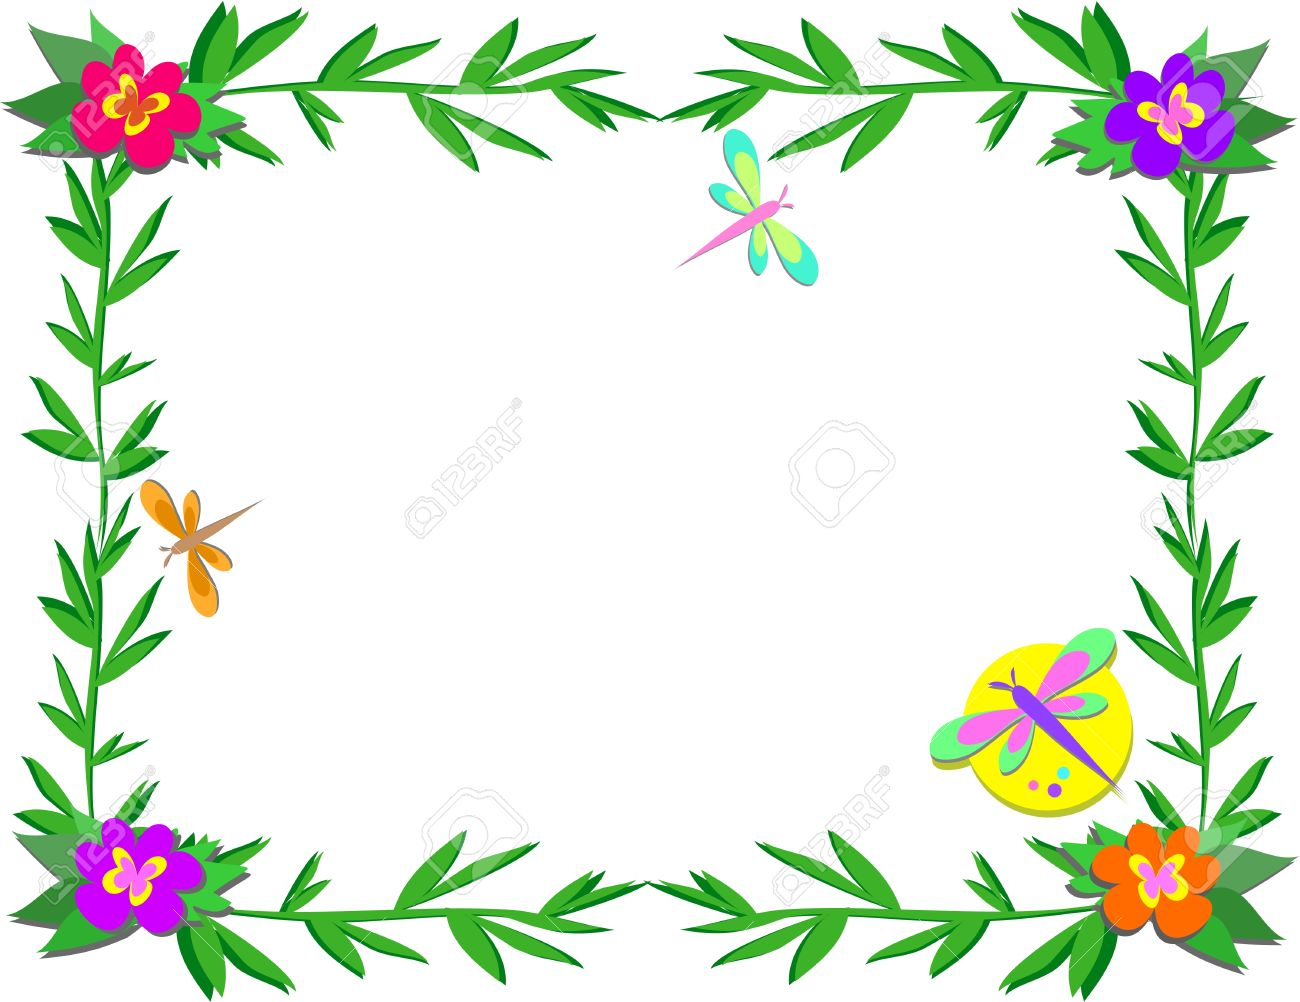 Frame with Bamboo, Flowers, and Insects.